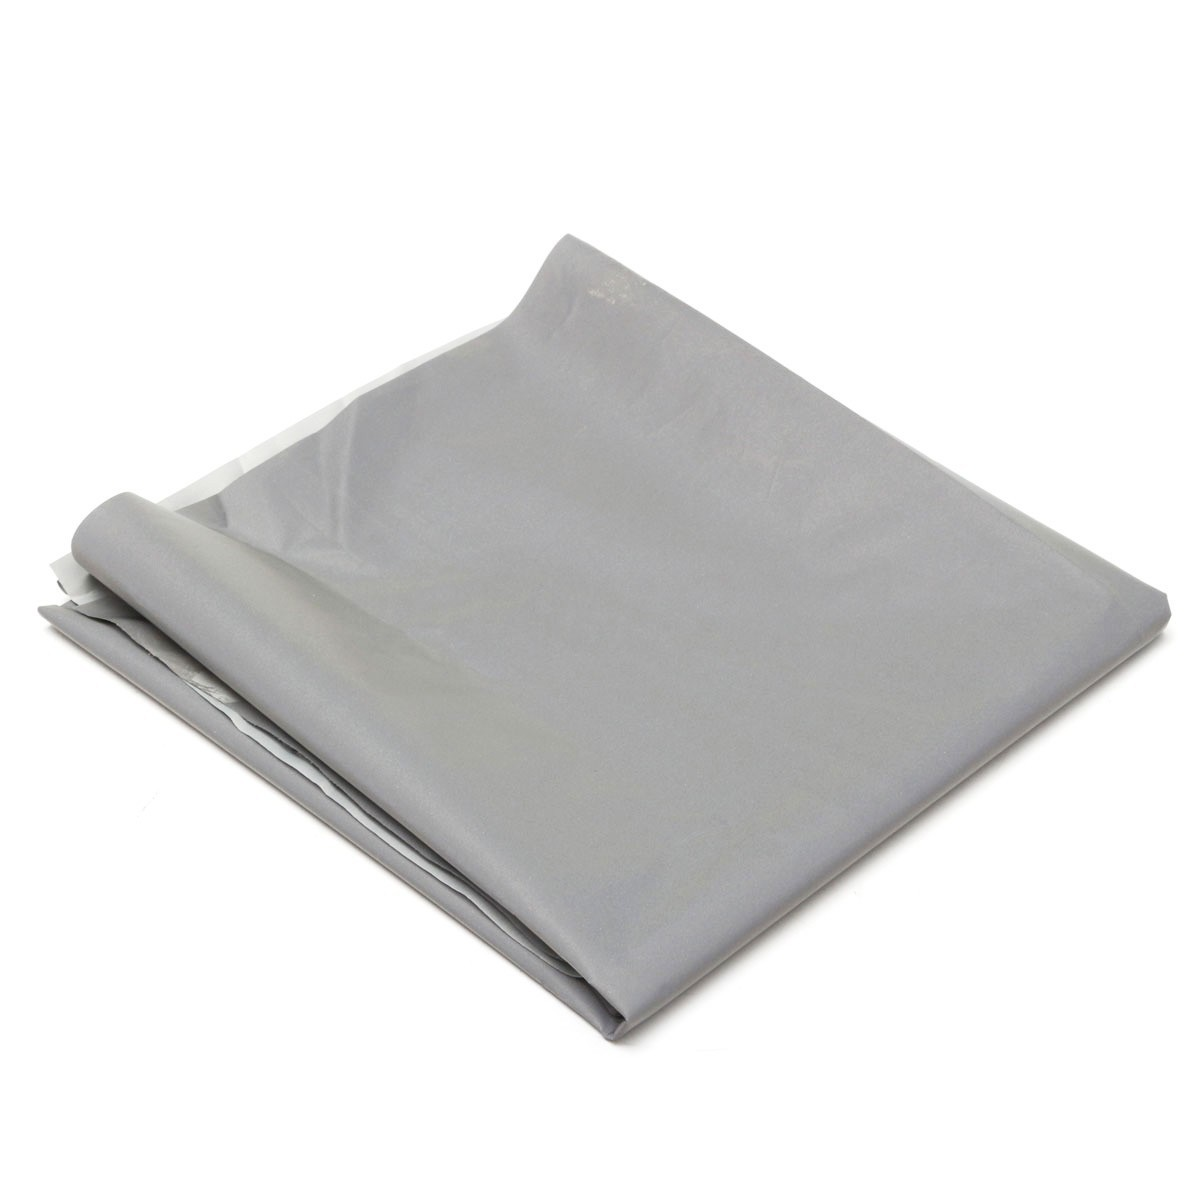 Silver Reflective Fabric Sew On Cloth Material Highlight Chemical Fiber 39.4inch